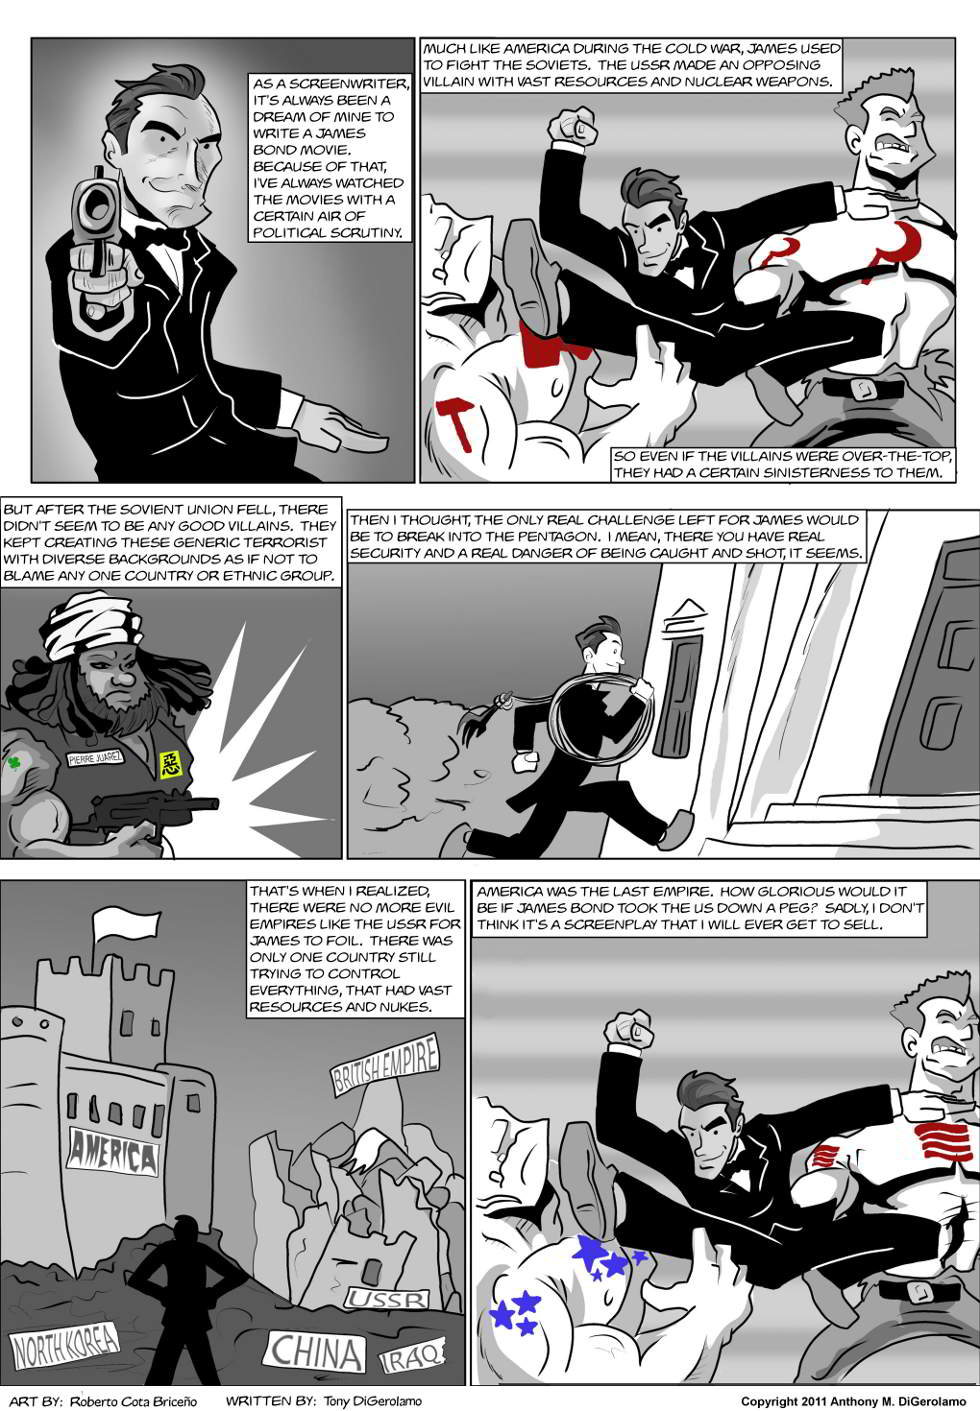 The Antiwar Comic:  If I Wrote James Bond